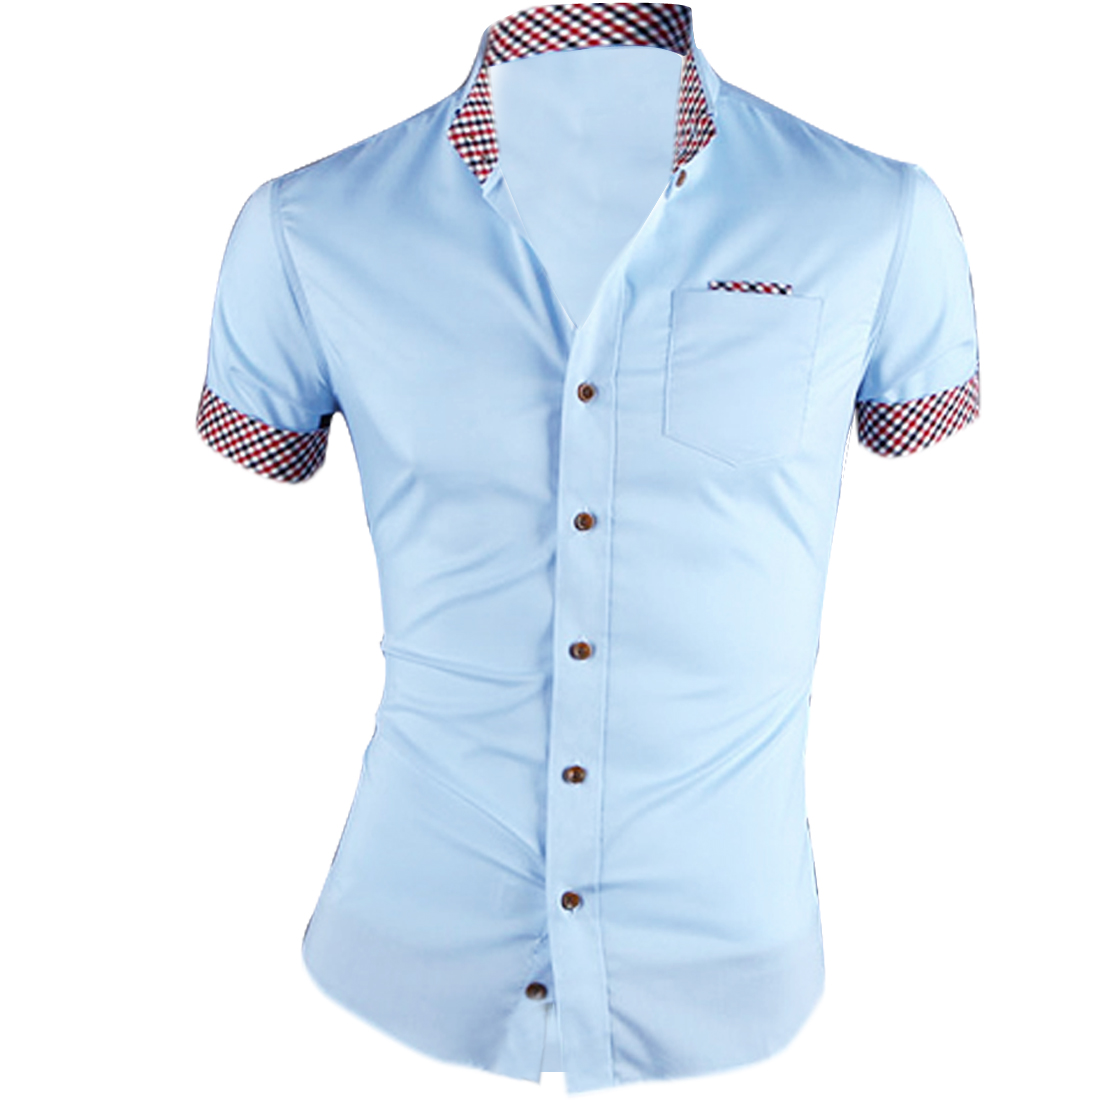 Man Chic Baby Blue Point Collar Single-Breasted Front Plaid Detail Shirt M